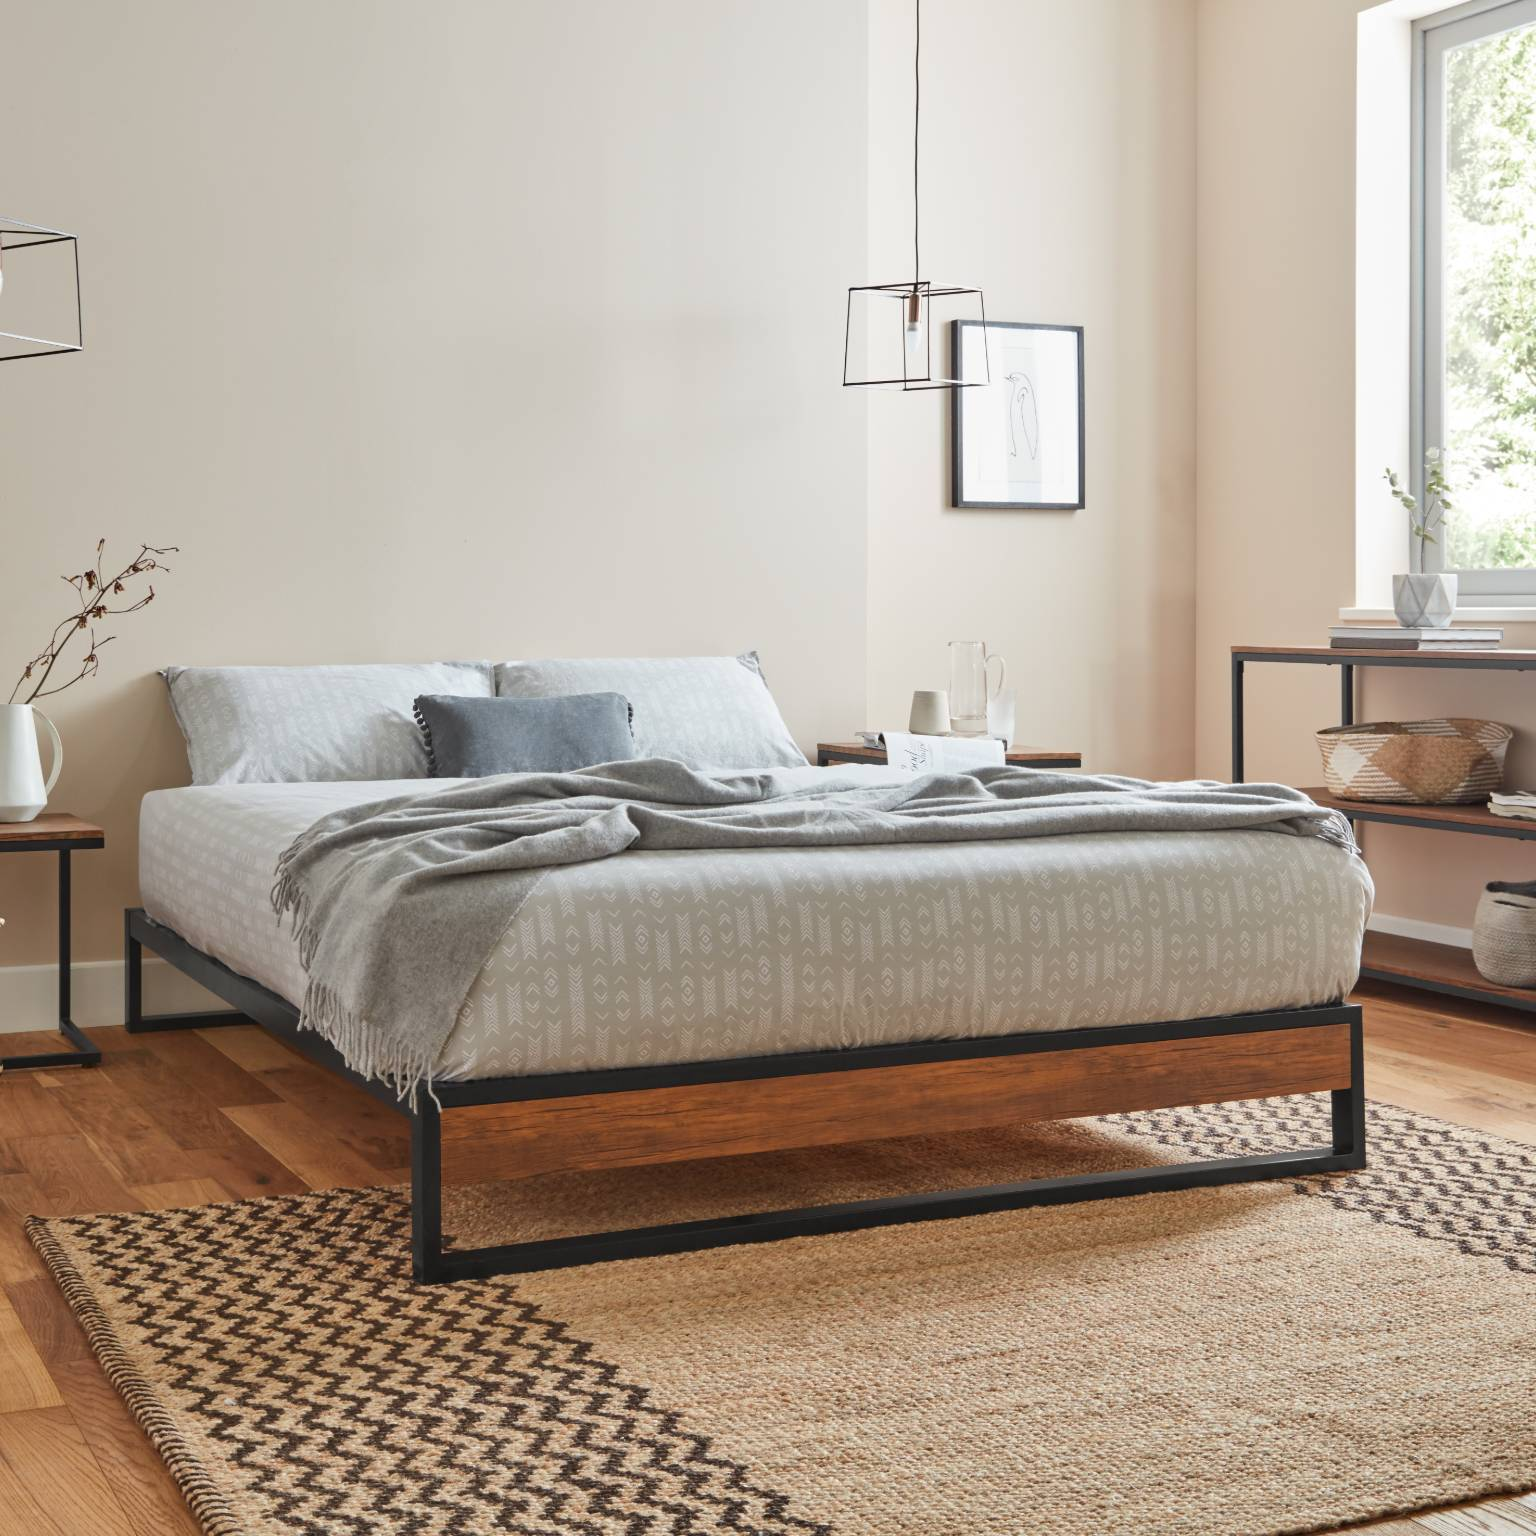 Picture of: Heeley Double Platform Bed Black Metal And Wood Effect Delivery On Laura James